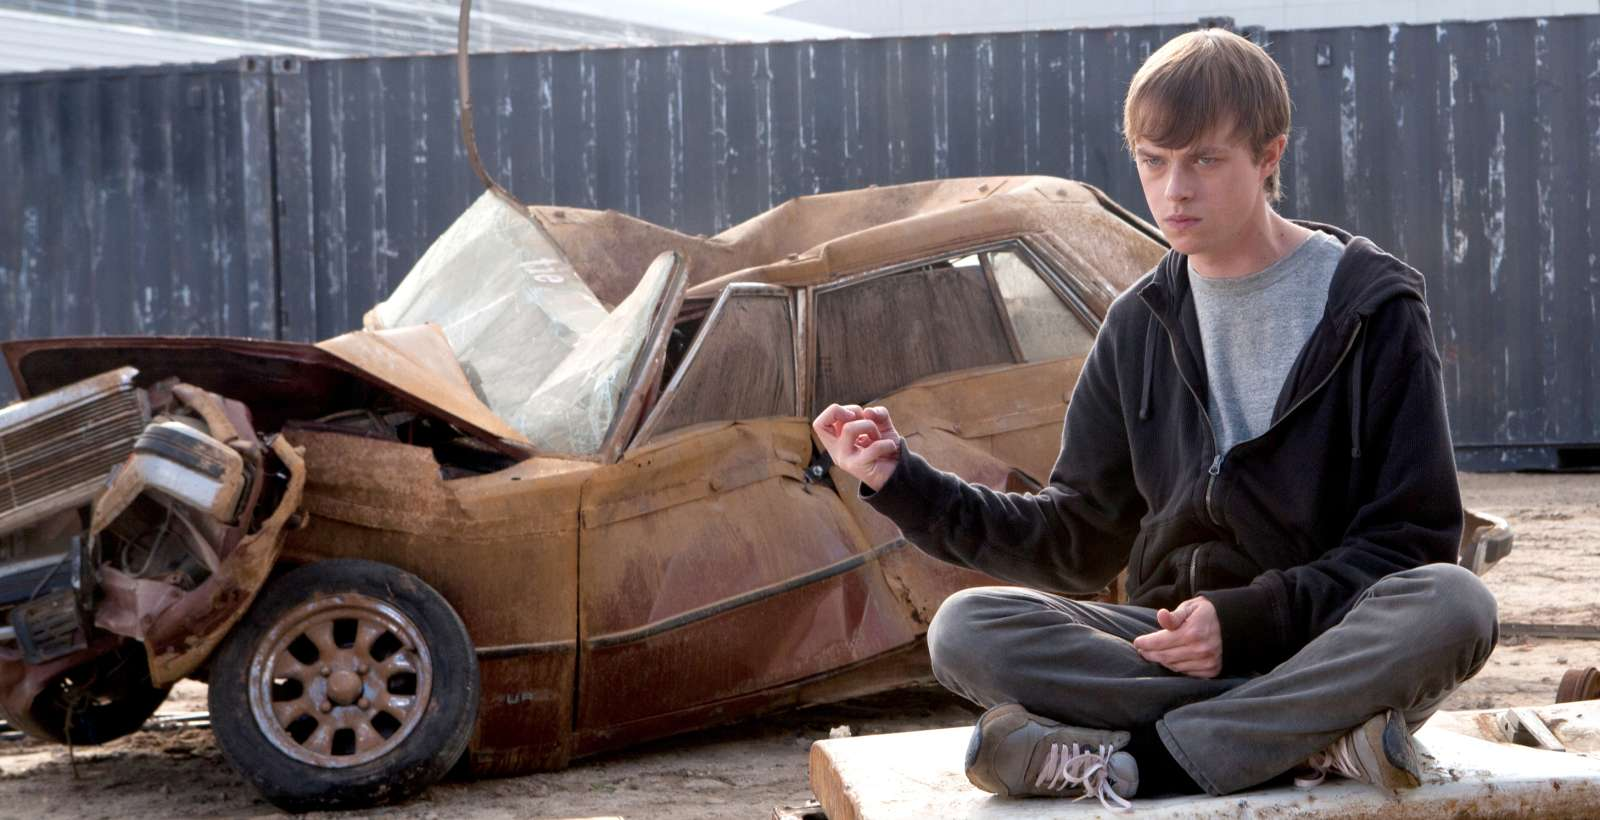 Chronicle still